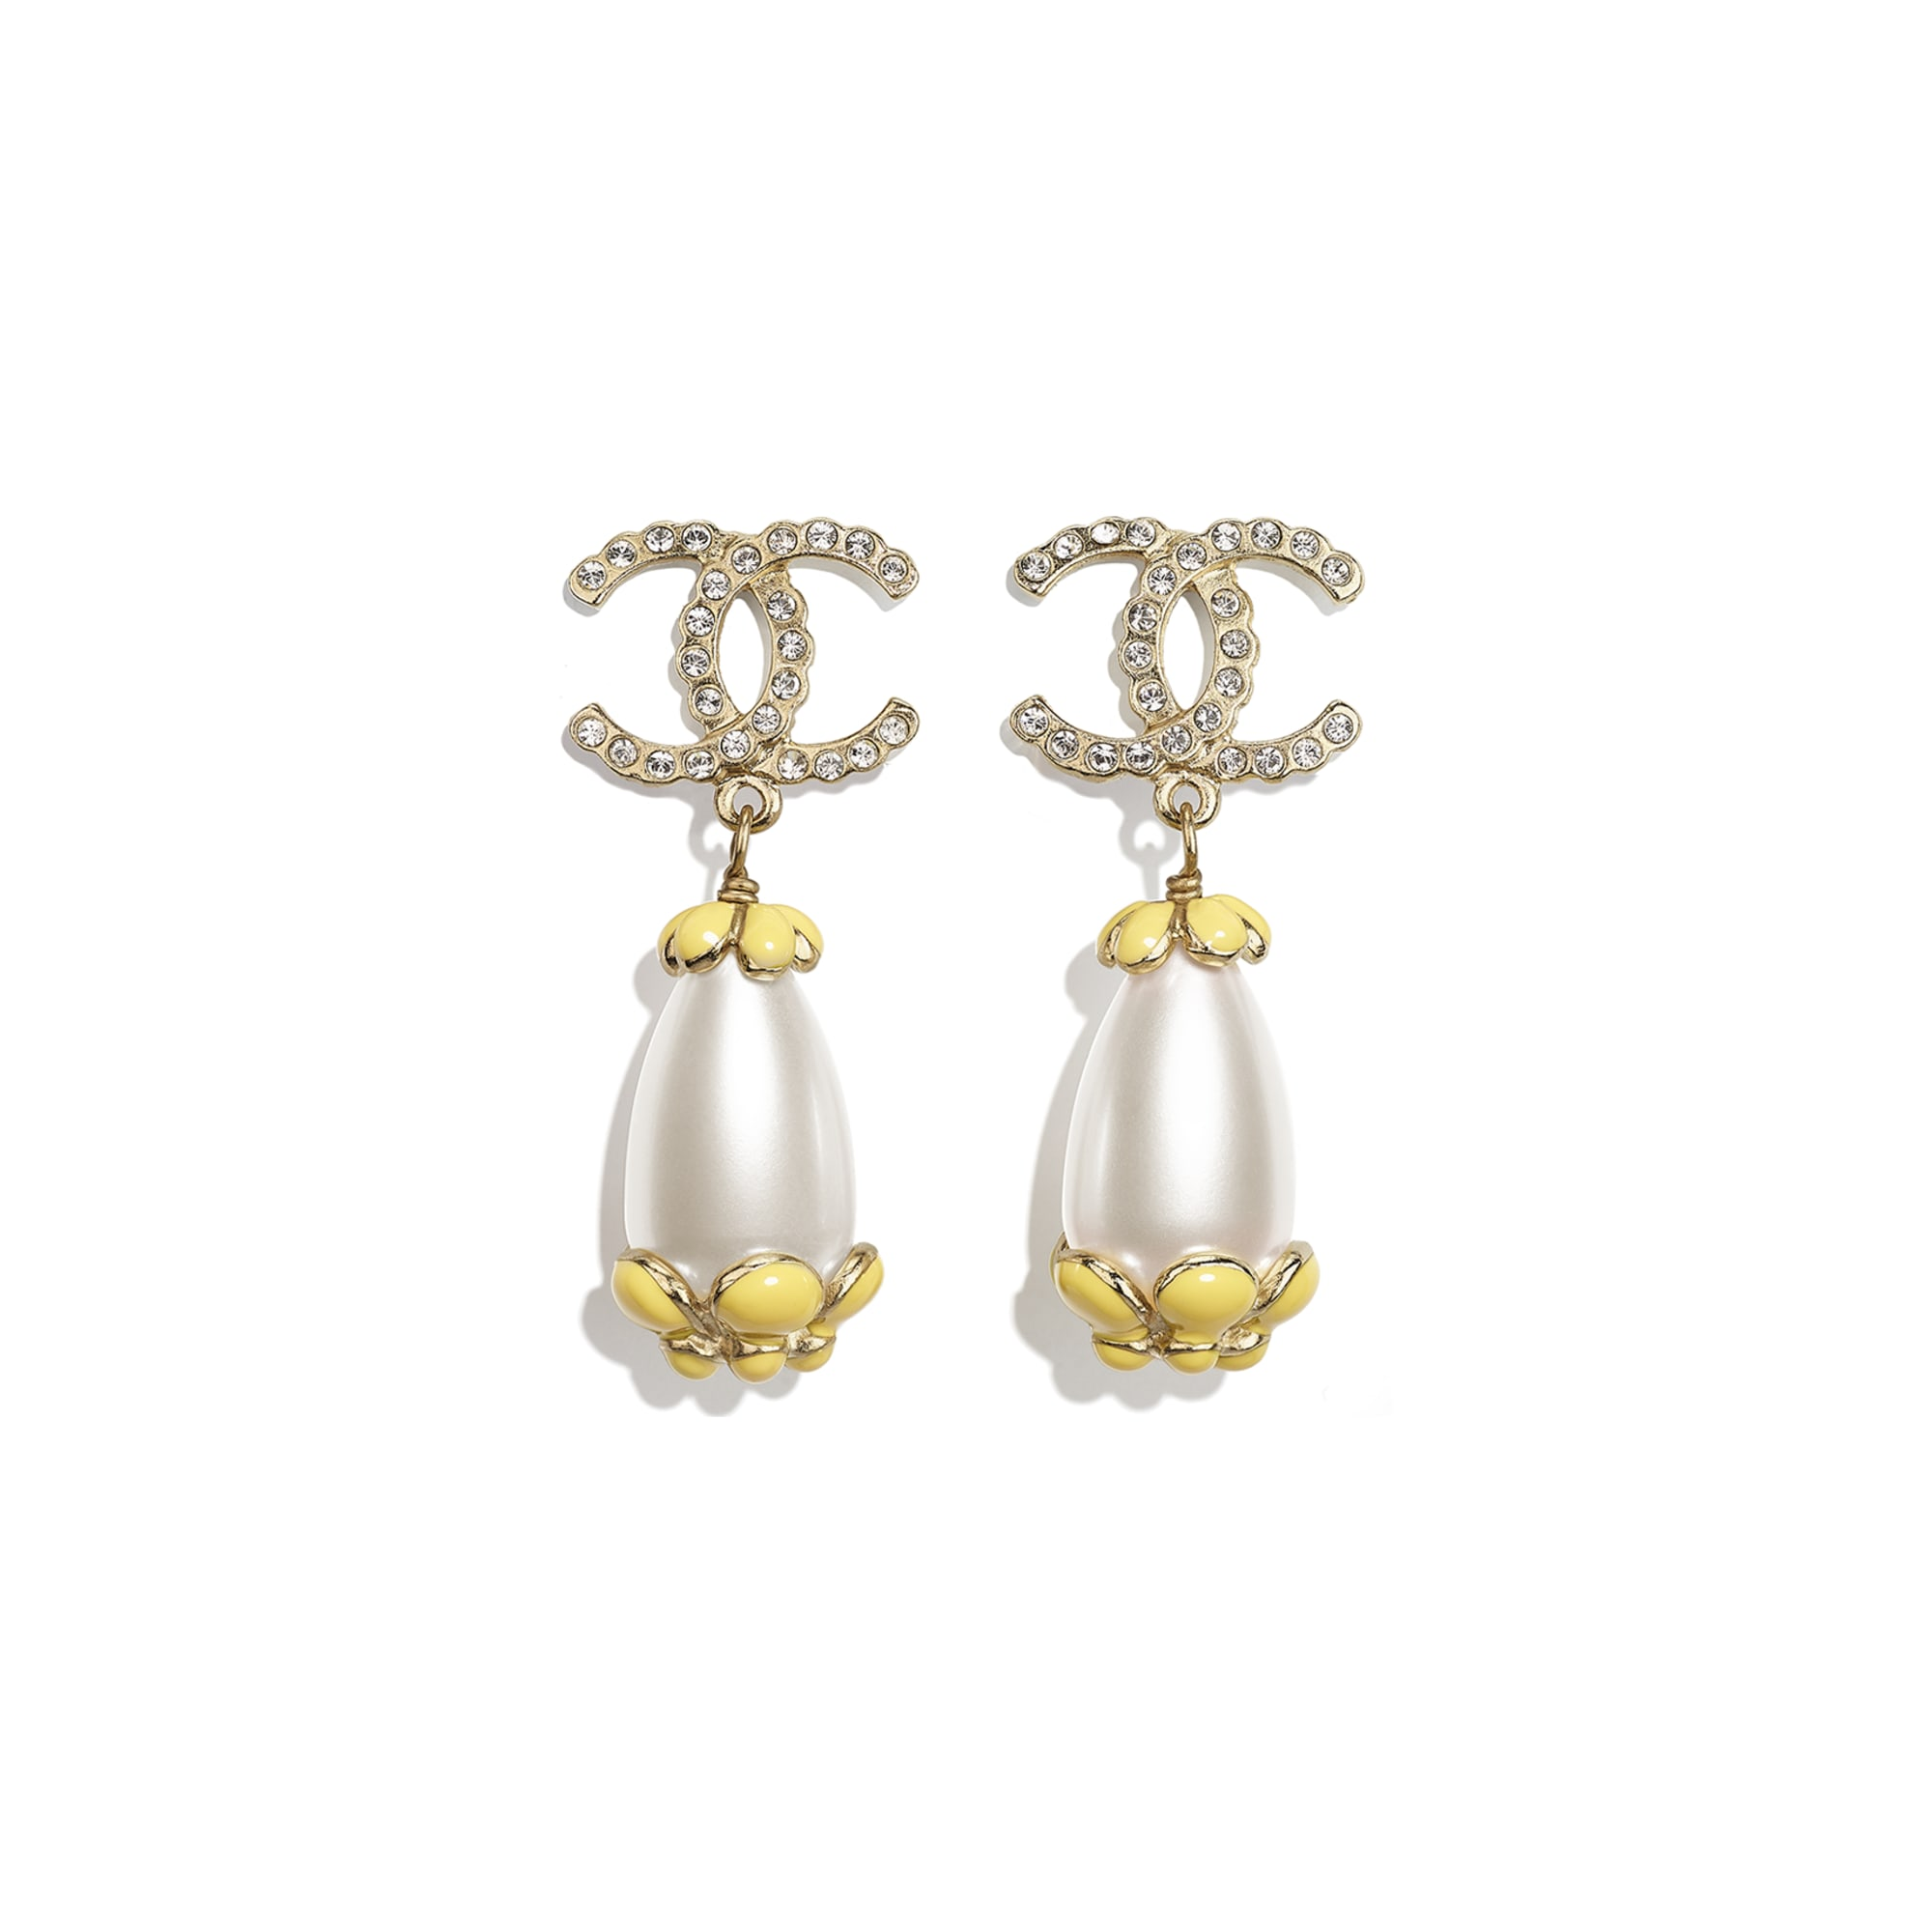 Clip-On Earrings - Gold, Pearly White, Crystal & Yellow - Metal, Diamantés & Resin - CHANEL - Default view - see standard sized version